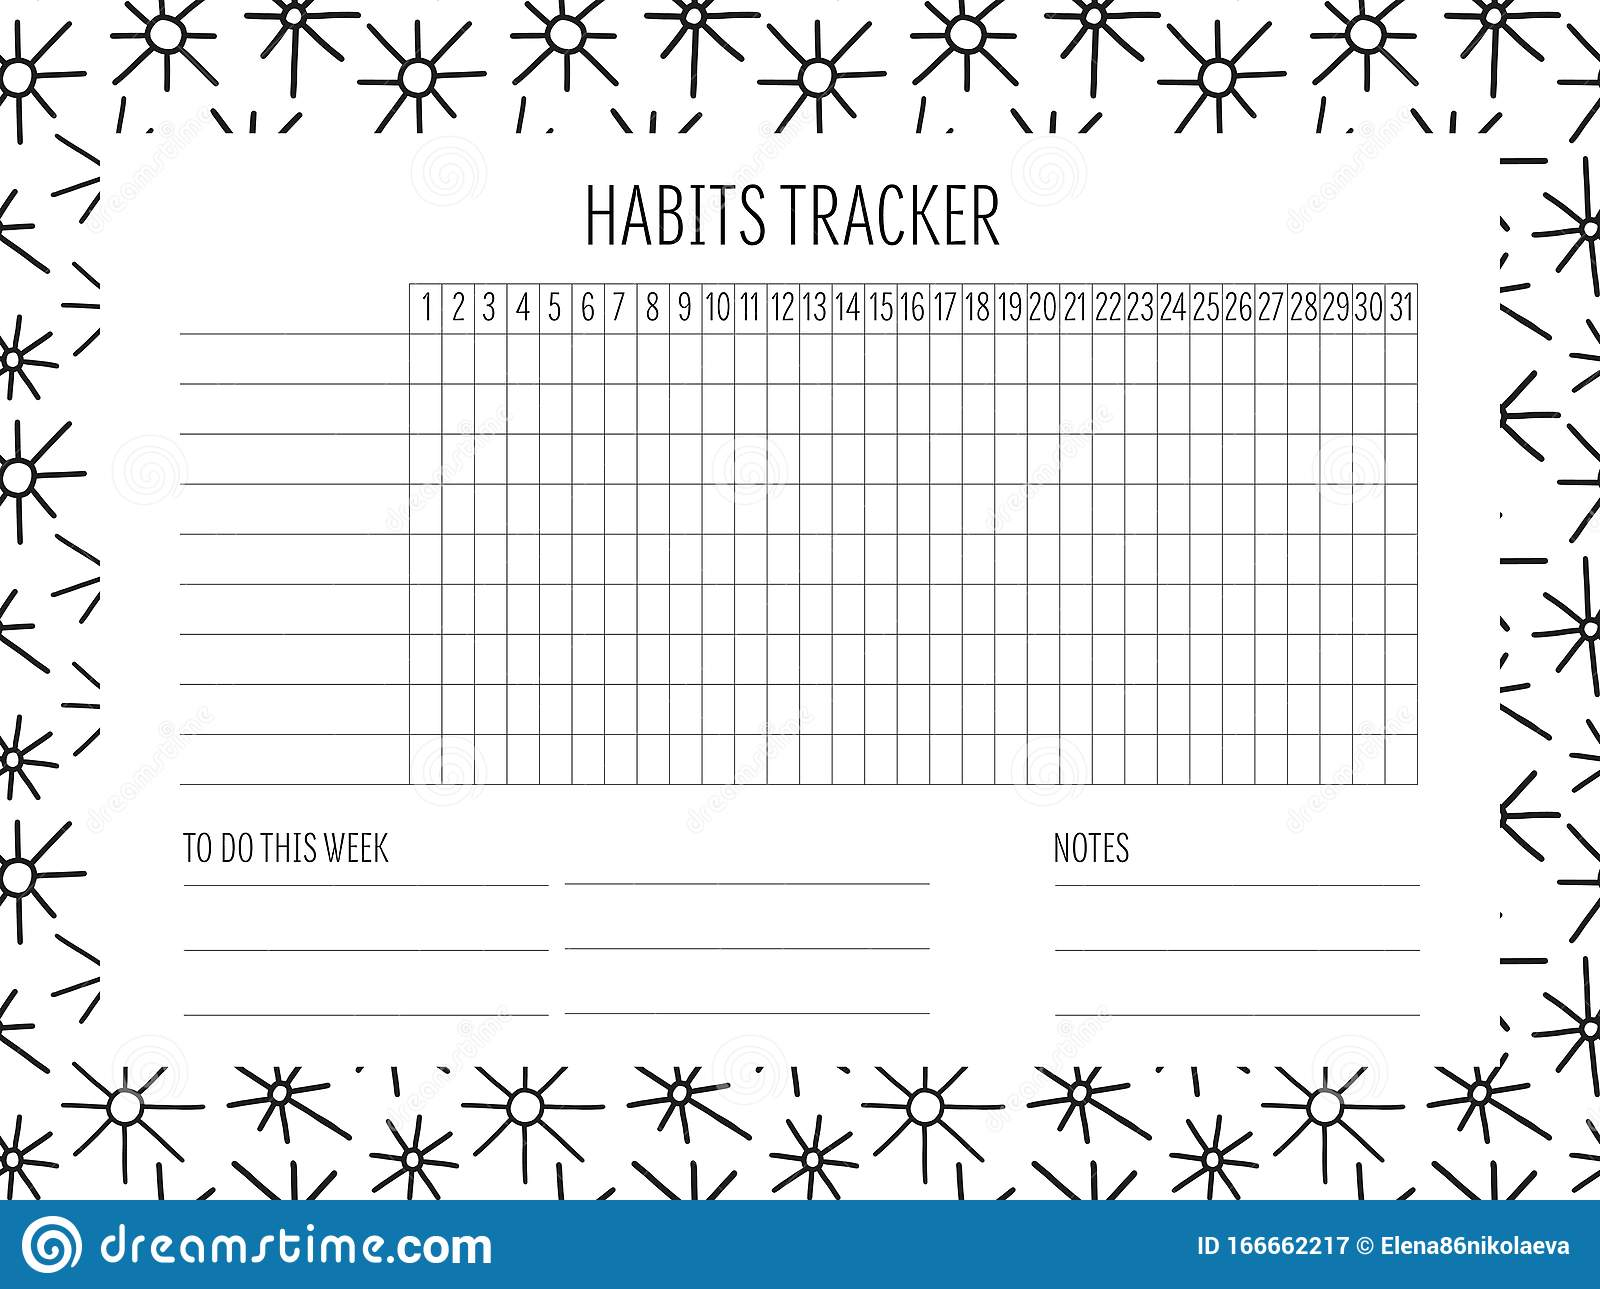 It is a picture of Monthly Habit Tracker Printable intended for downloadable